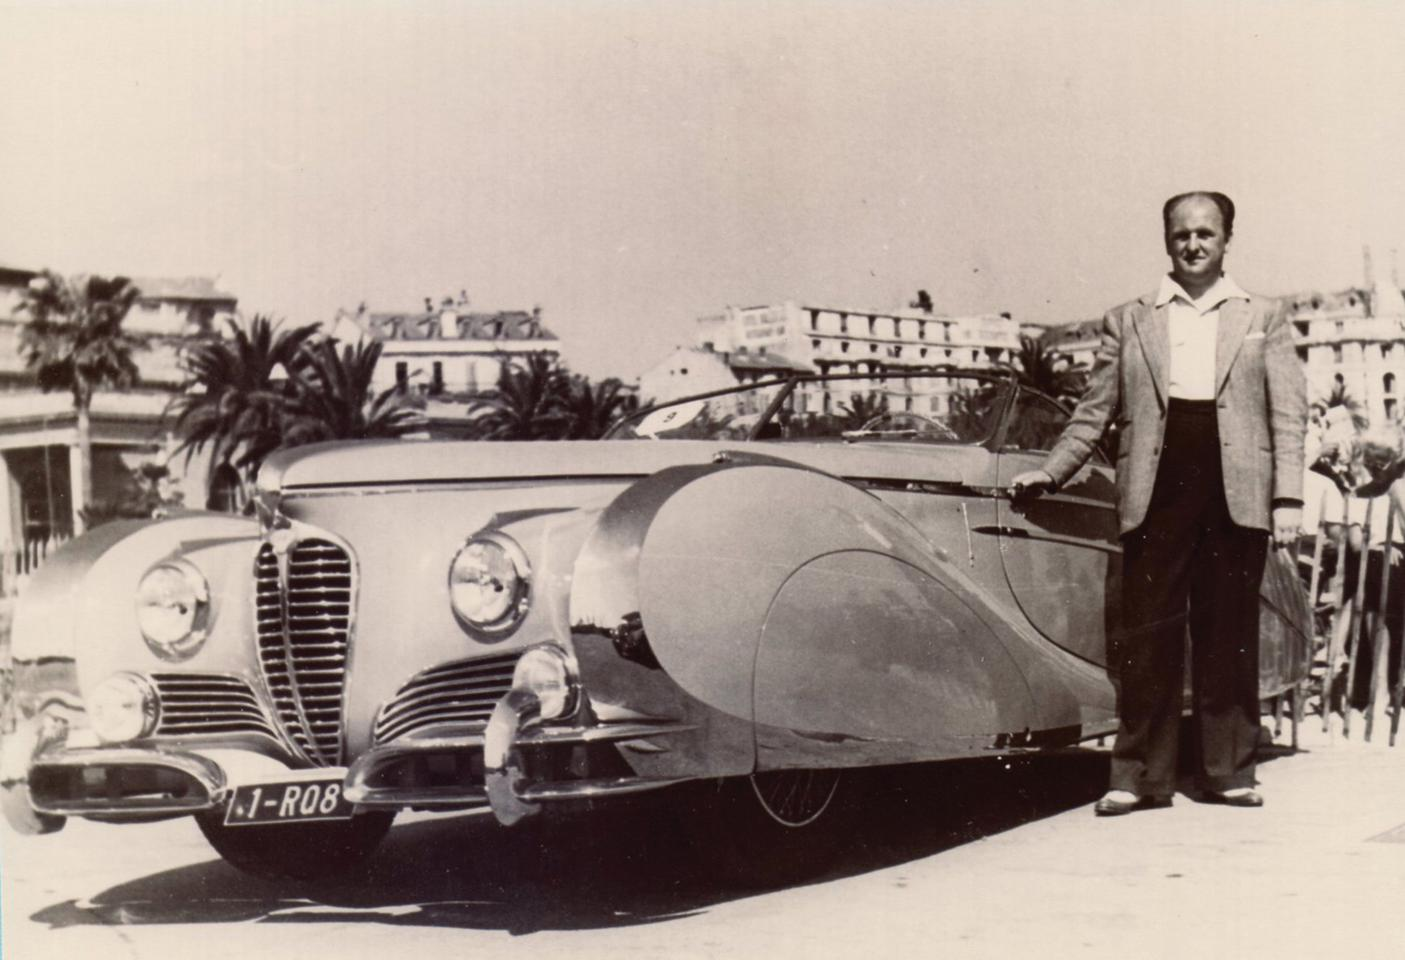 The Delahaye 175 S Roadster in its prime on the concours circuit. Photo: COLLECTION JEAN PIERRE